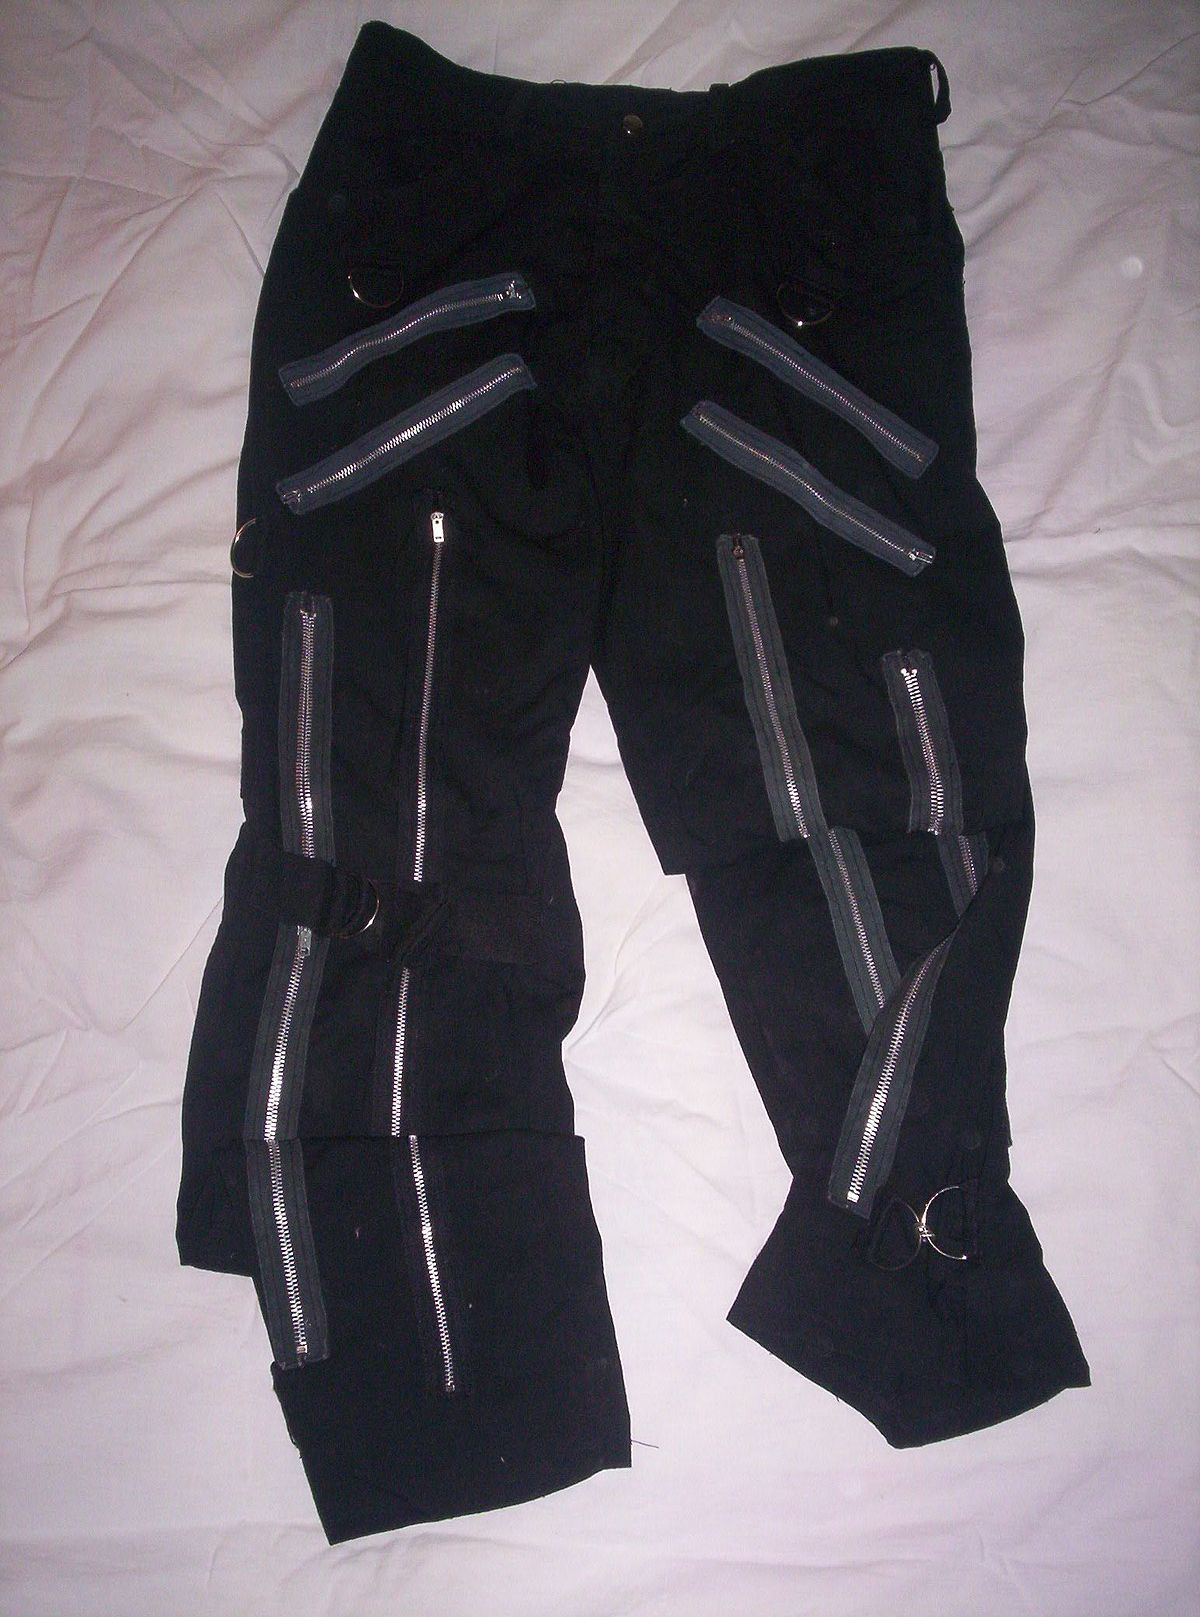 Bondage pants zippers